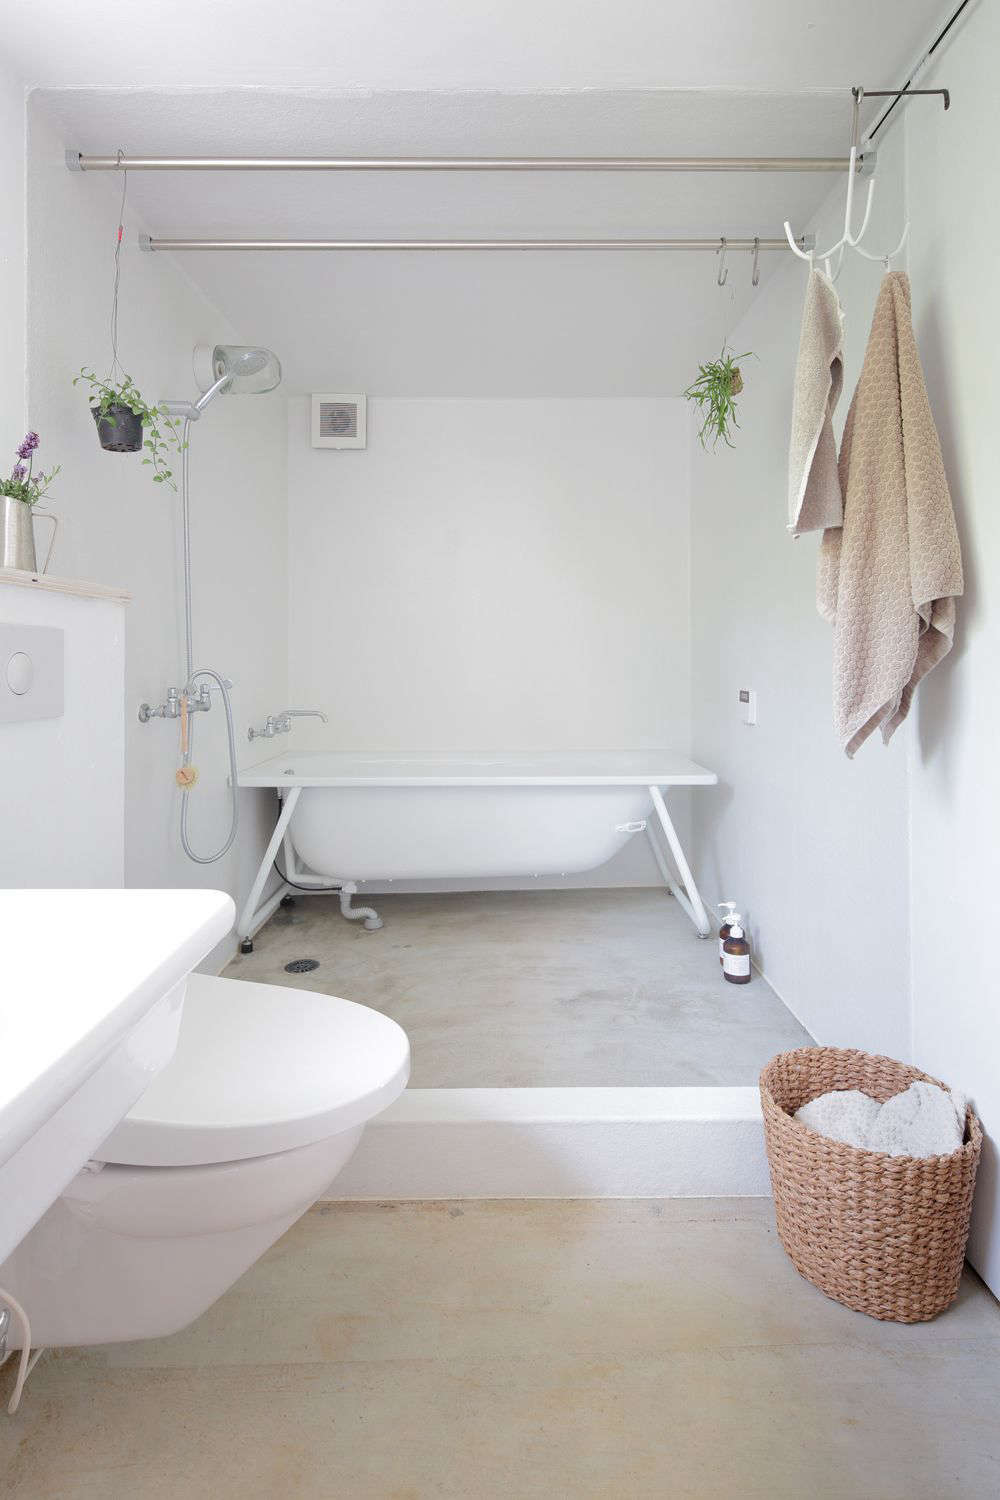 All-white bath room with exposed frame bathtub, HSK Subako house Tokyo, No. 555 architectural design office.